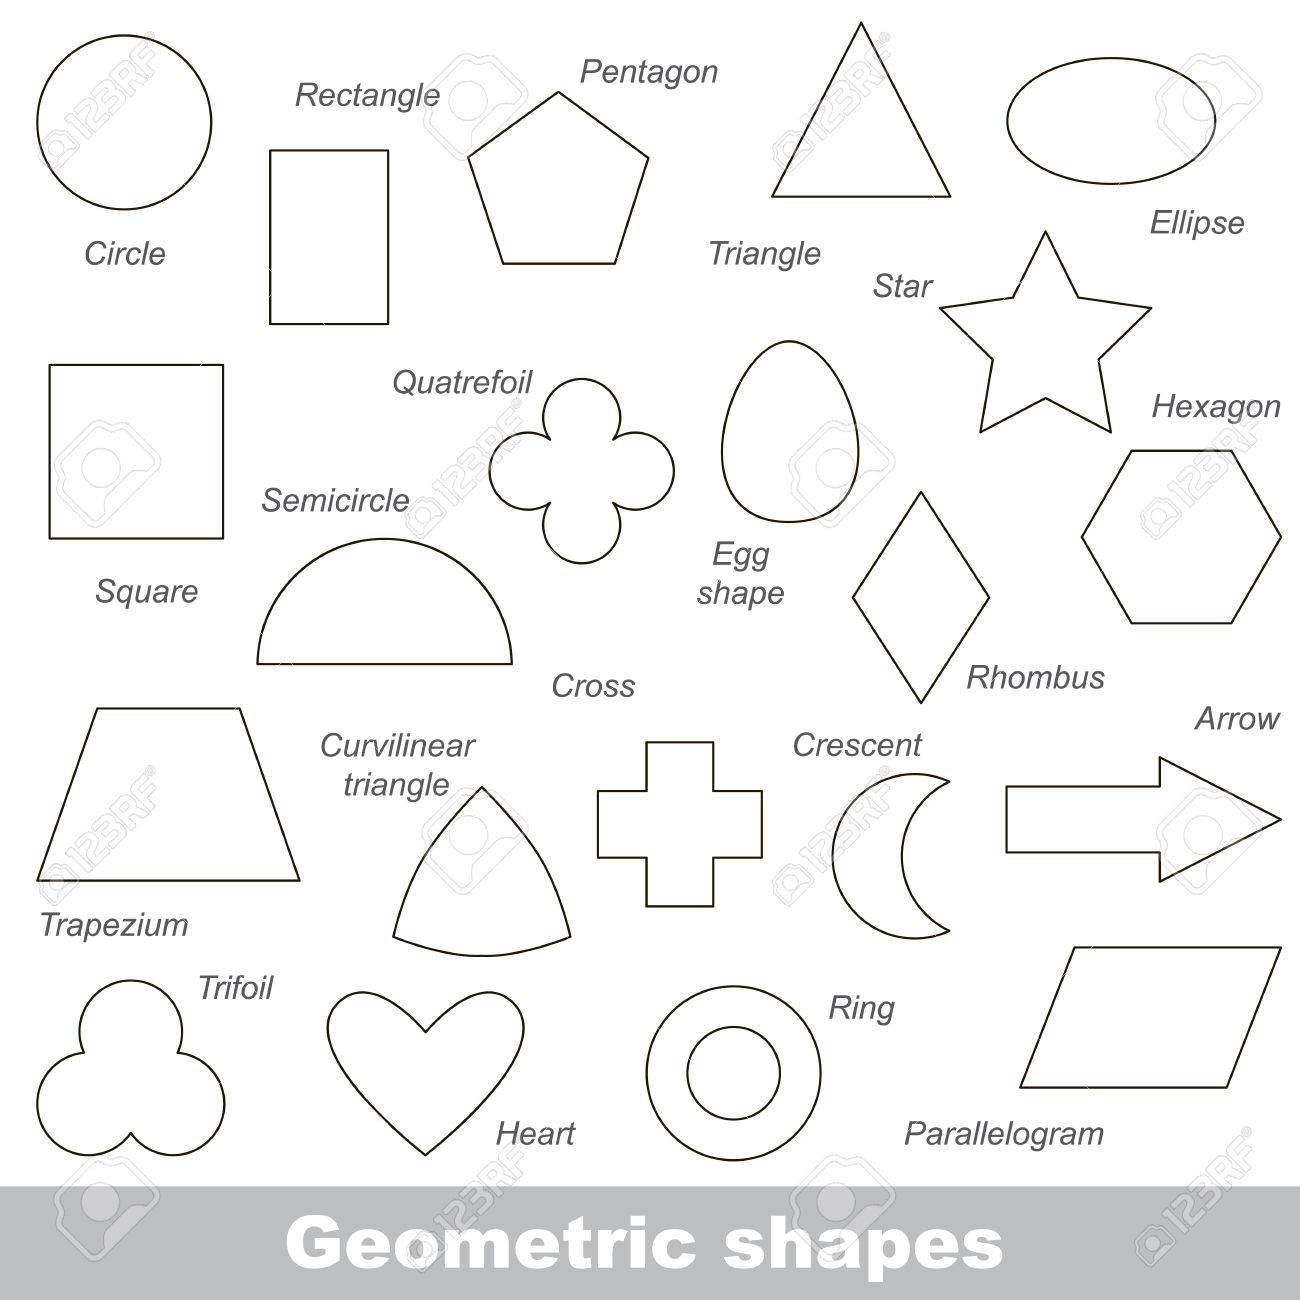 26   Cool Simple Geometric Shapes for Simple Geometric Shapes Worksheets  53kxo